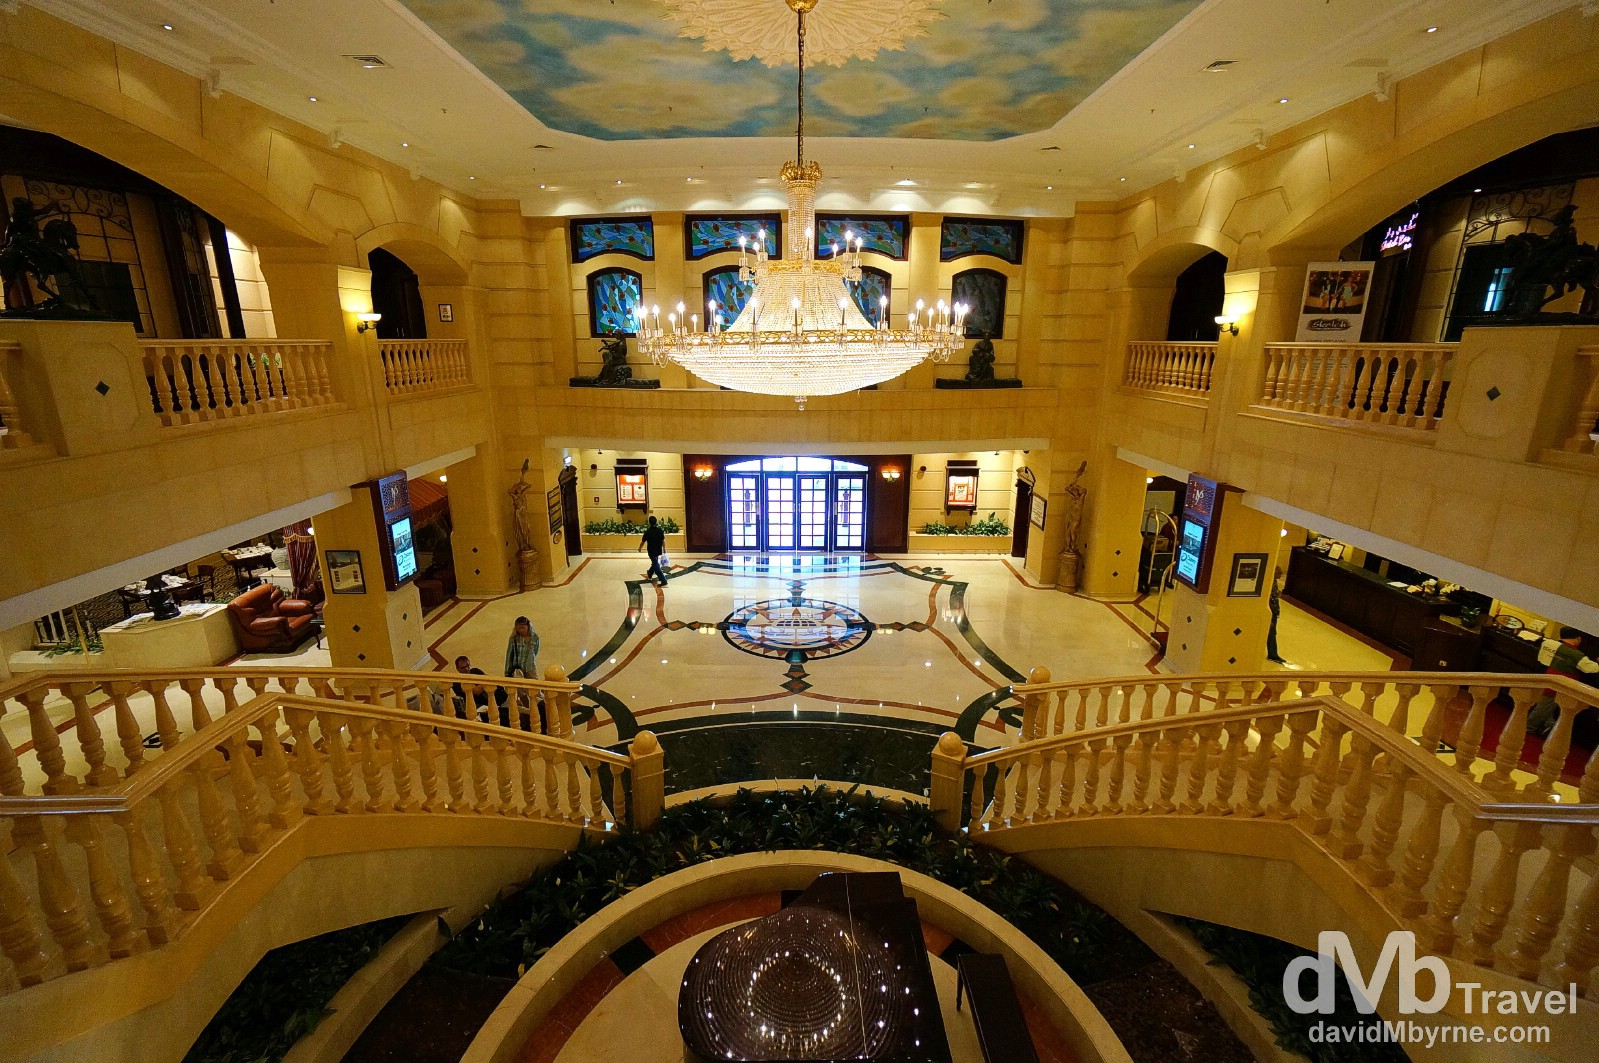 The main foyer of the 5-star Metropolitan Palace in Deira, Dubai, UAE. April 18th, 2014.